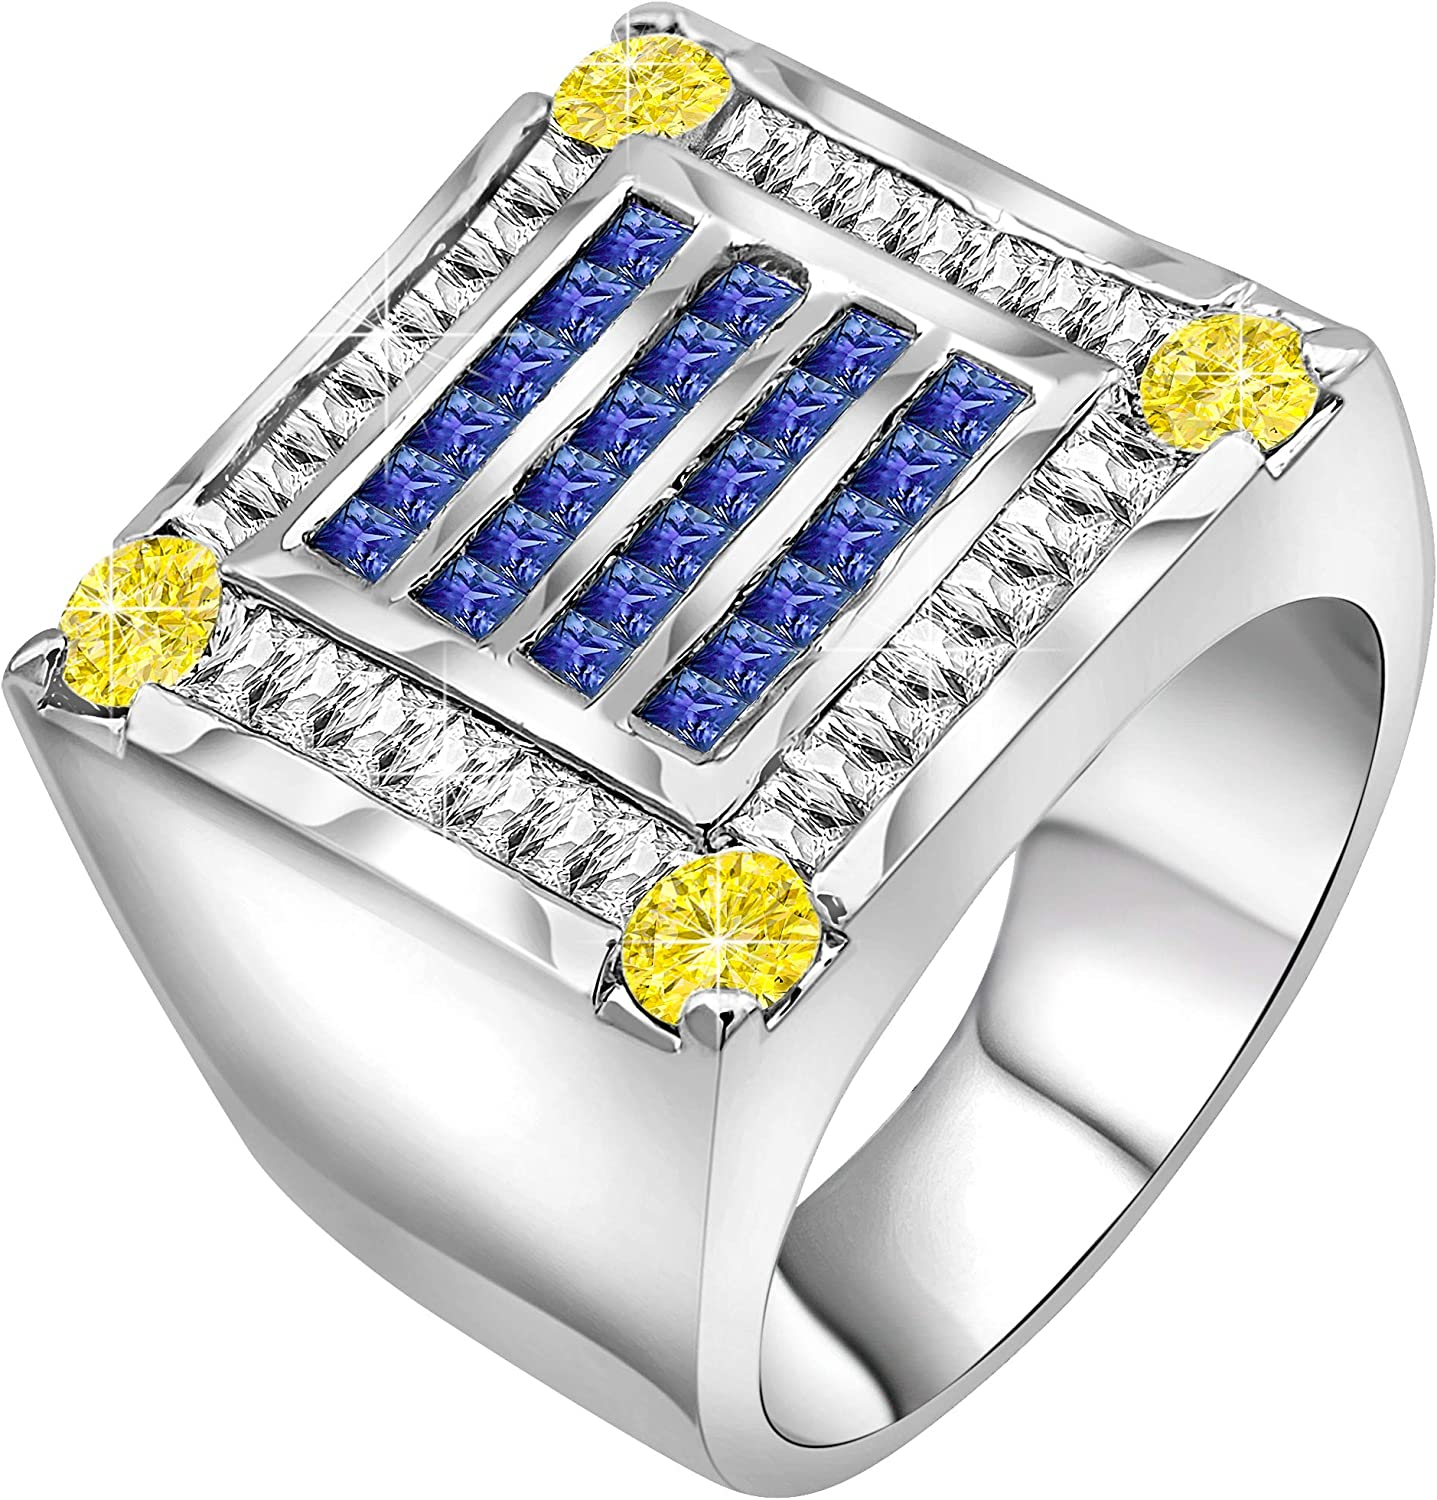 Sterling Manufacturers Men's Sterling Silver .925 Ring Featuring 56 Fancy Canary Yellow and Azure Blue Cubic Zirconia CZ Stones, Platinum Plated Flashy Design. Hand Polished.